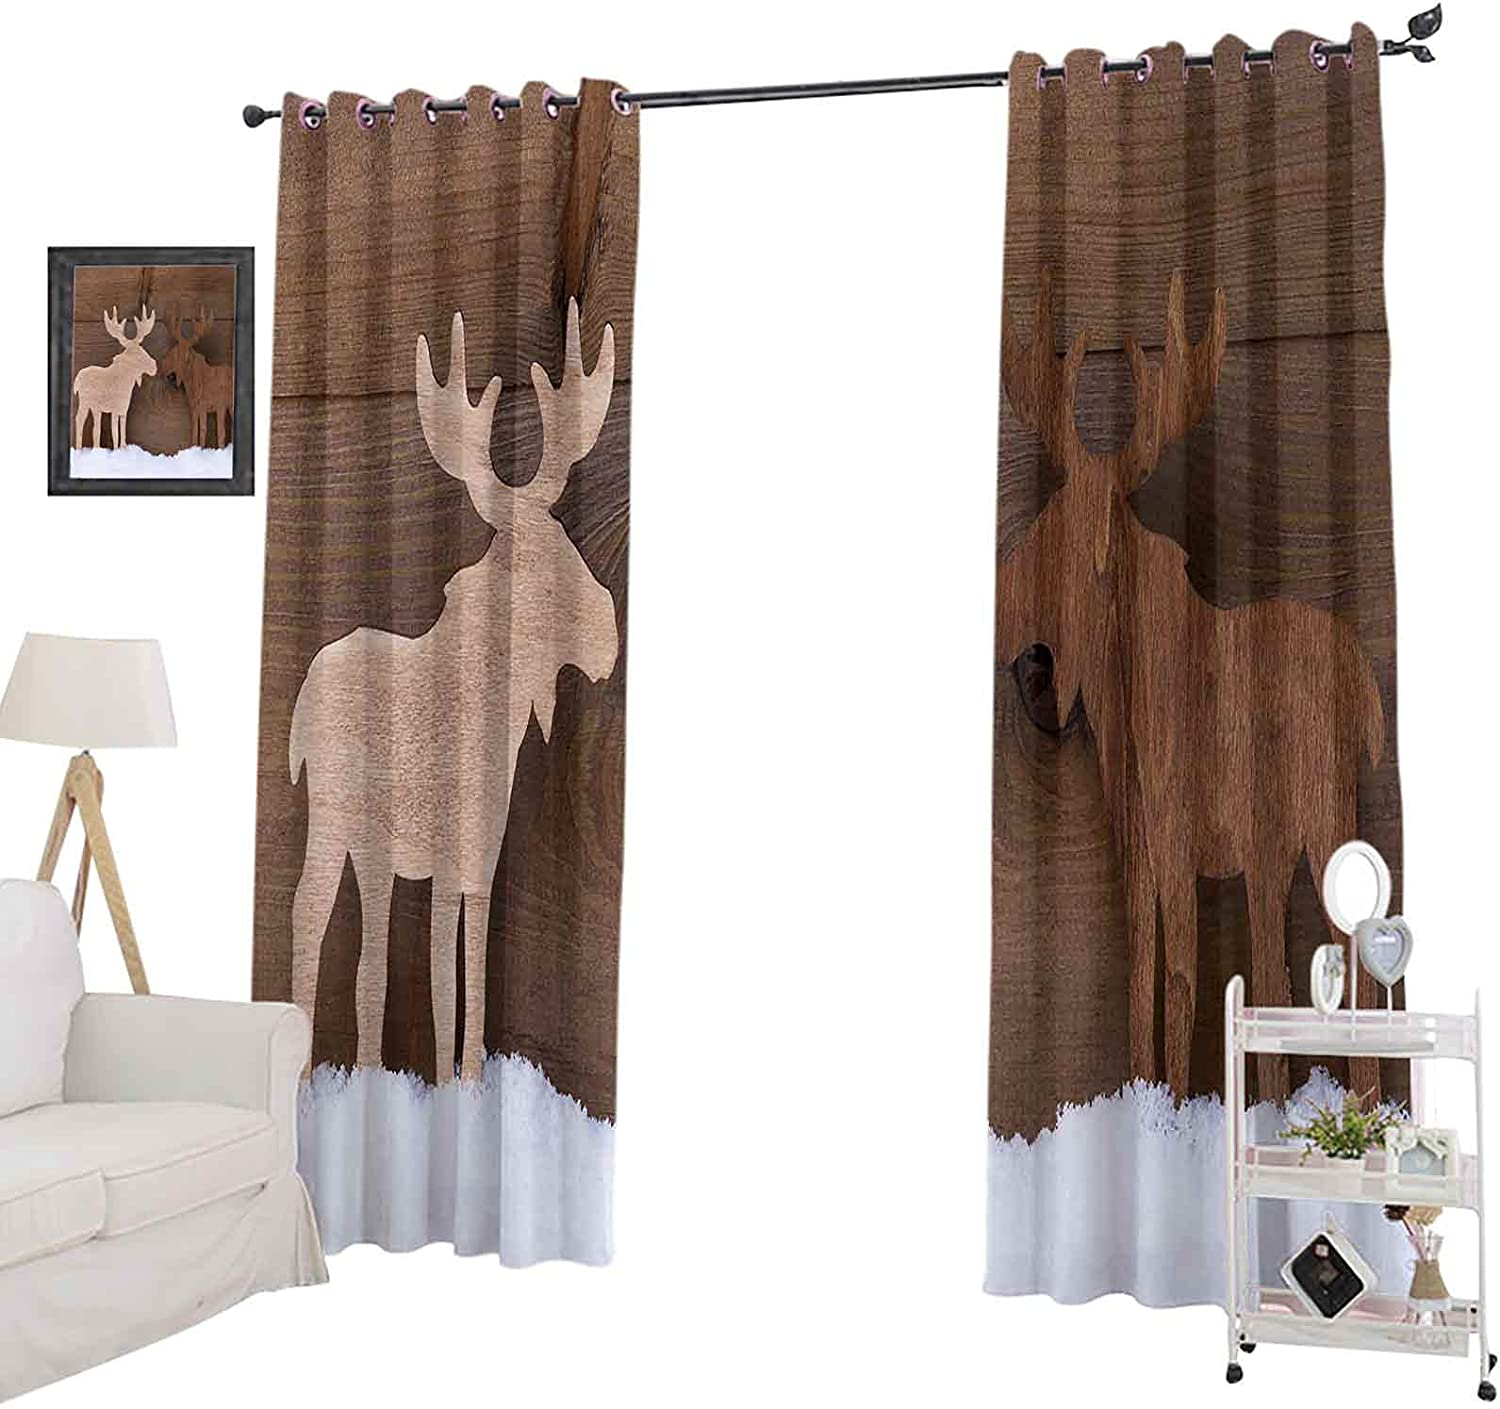 Blackout Curtain 72 Inches Long Sale price 40% OFF Cheap Sale for Be Kids Window Panel